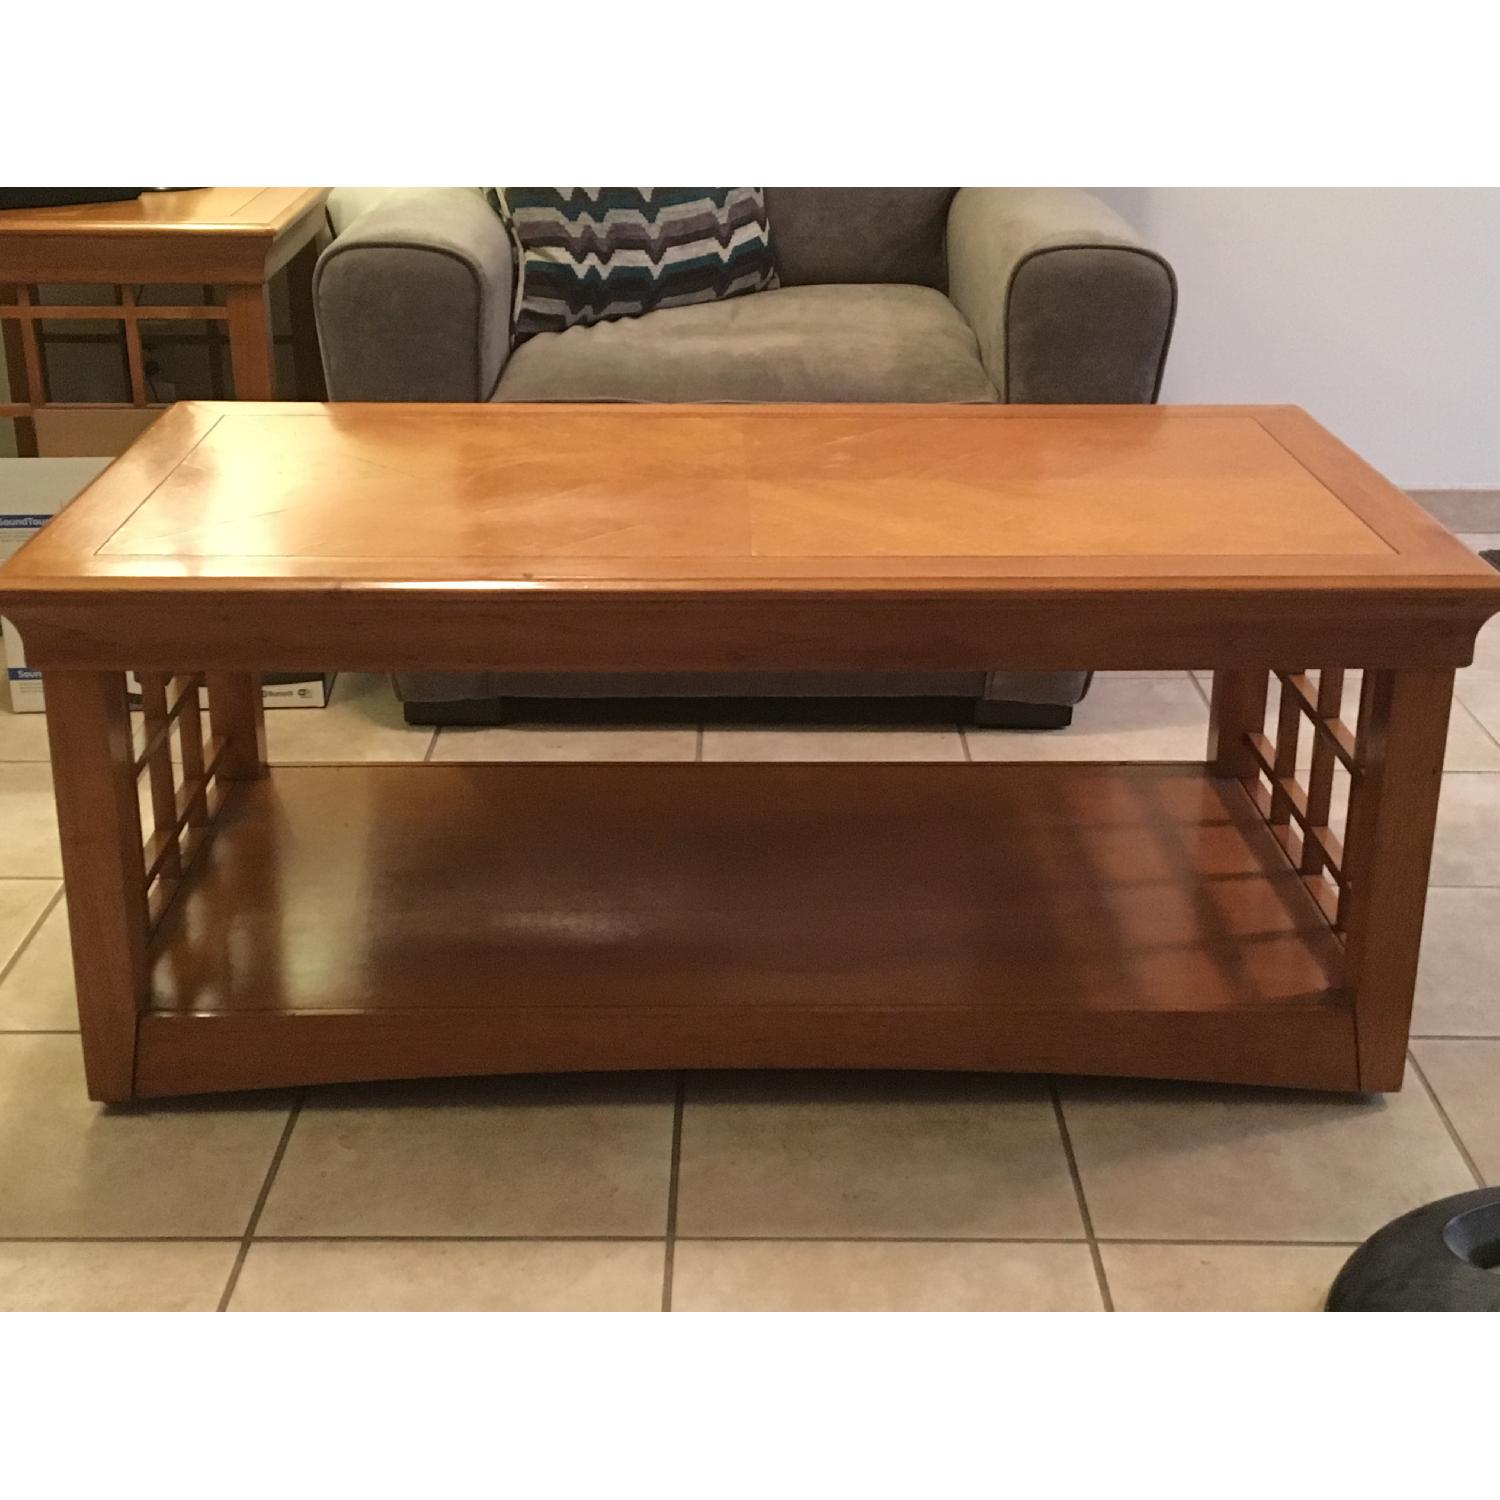 Furniture Options Wooden Coffee Table + 2 Matching End Tables - image-9